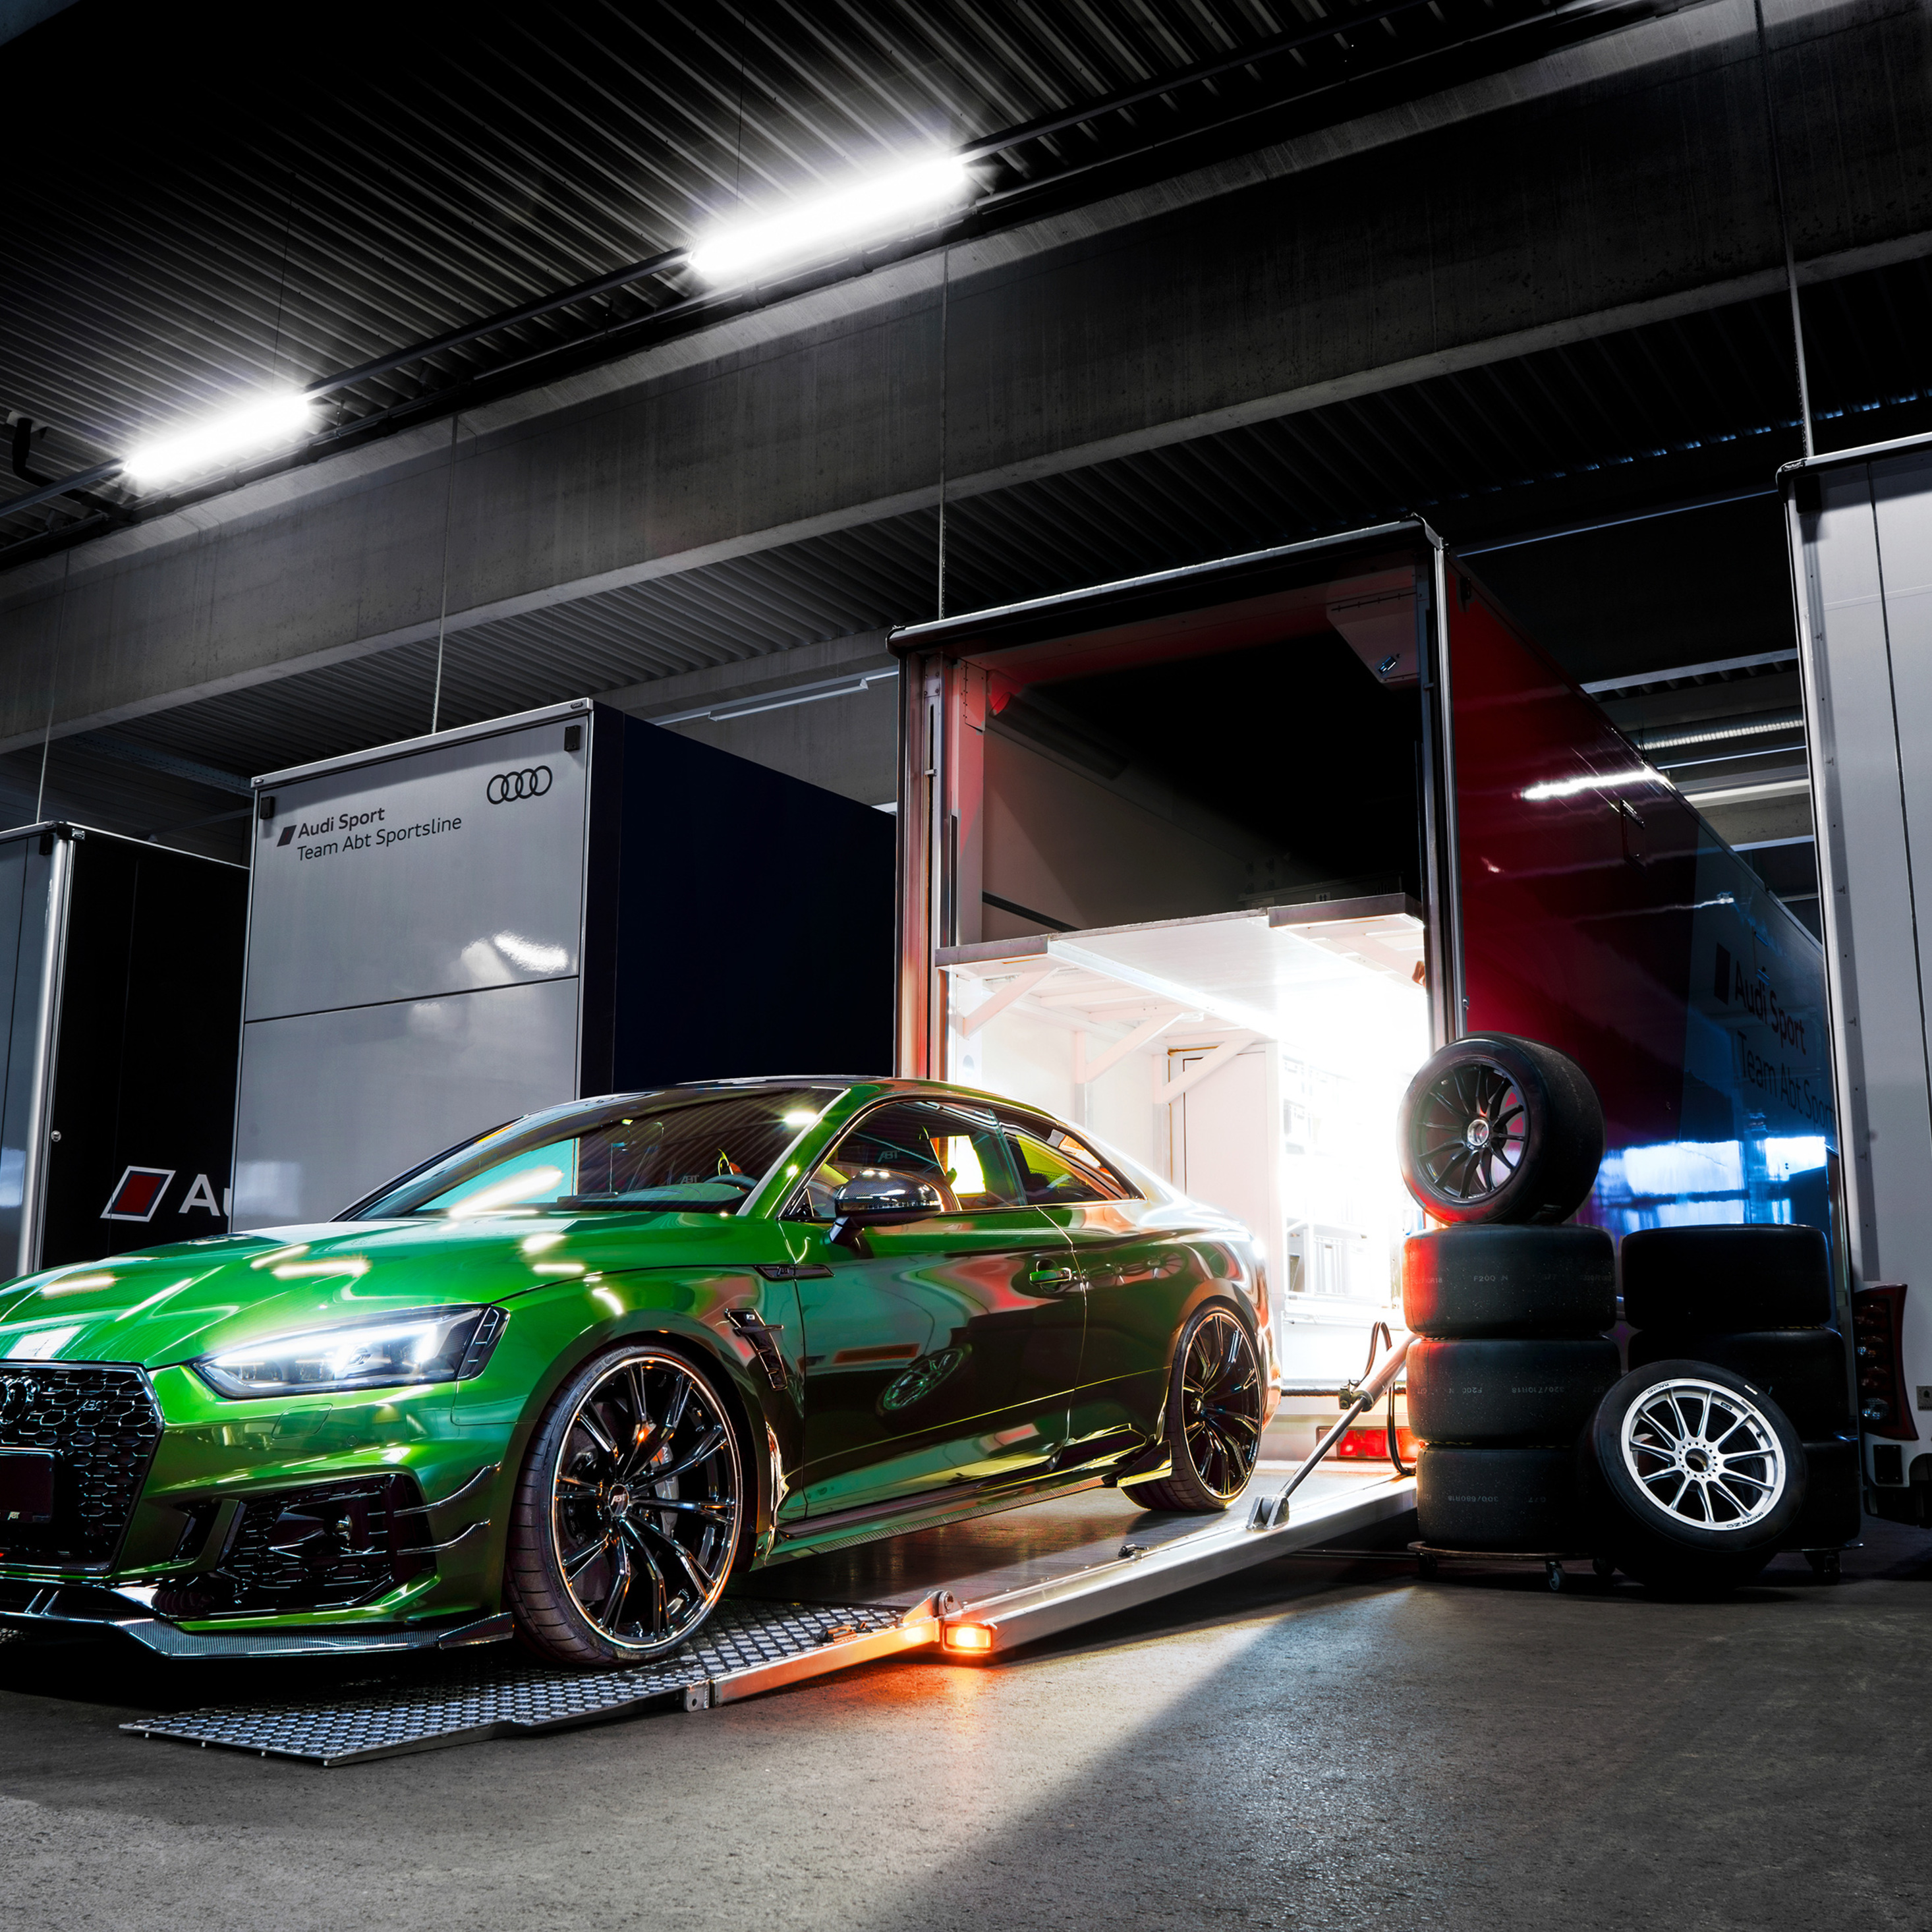 X Audi ABT RS R Coupe Ipad Pro Retina Display HD K - Abt ipad